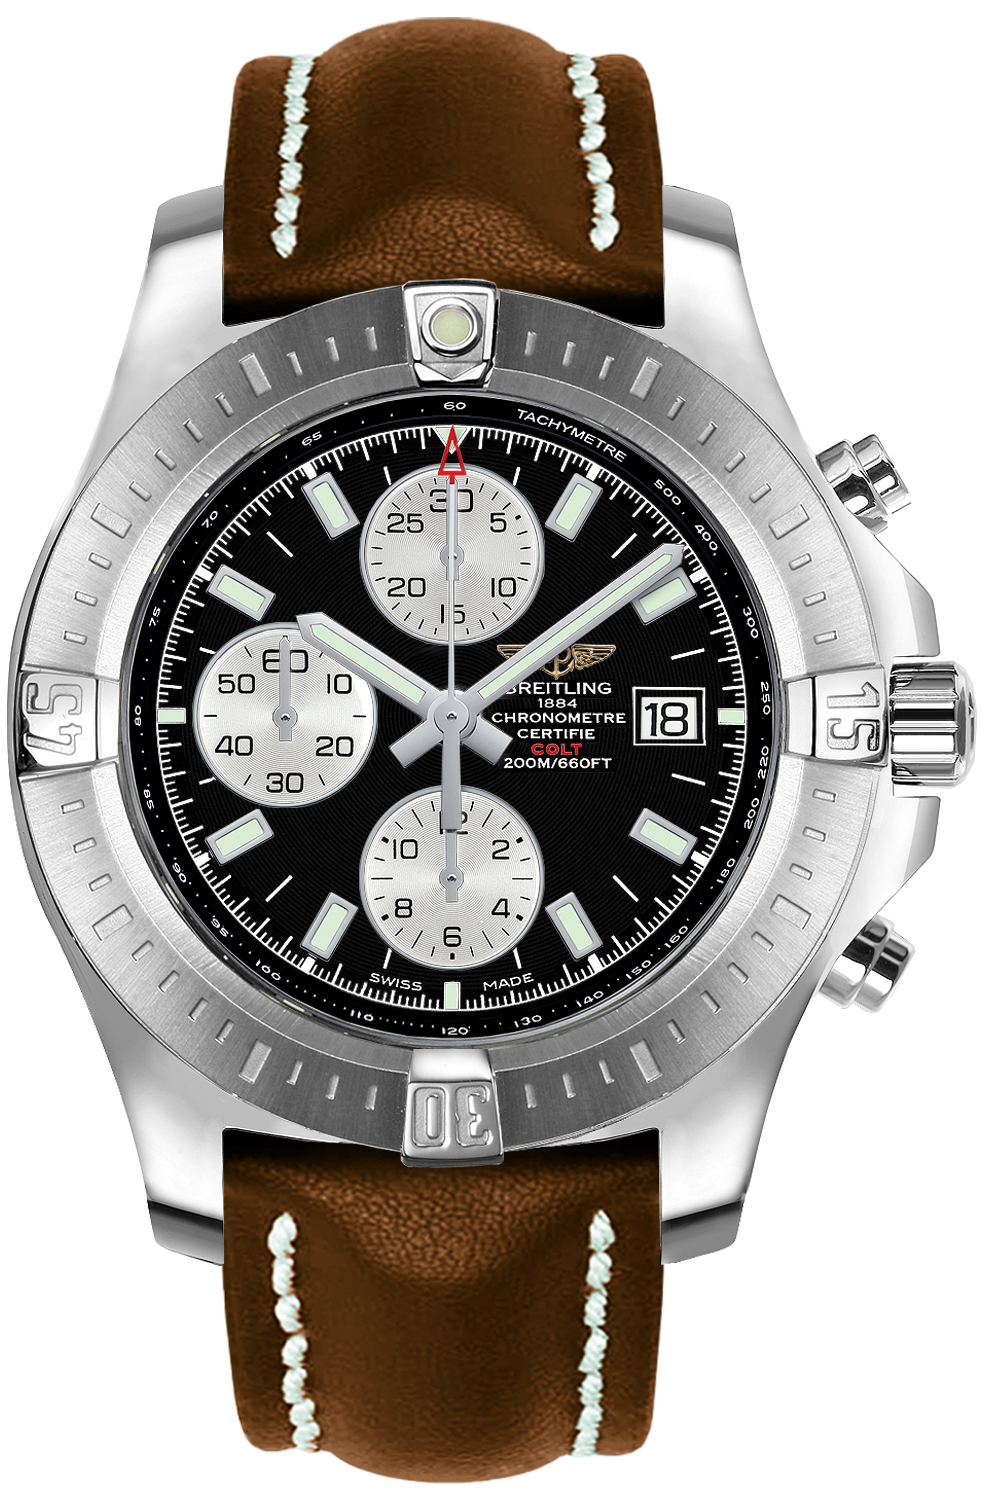 Breitling_Colt_Chronograph_Automatic_Black_Dial_Mens_Watch_A1338811BD83437X